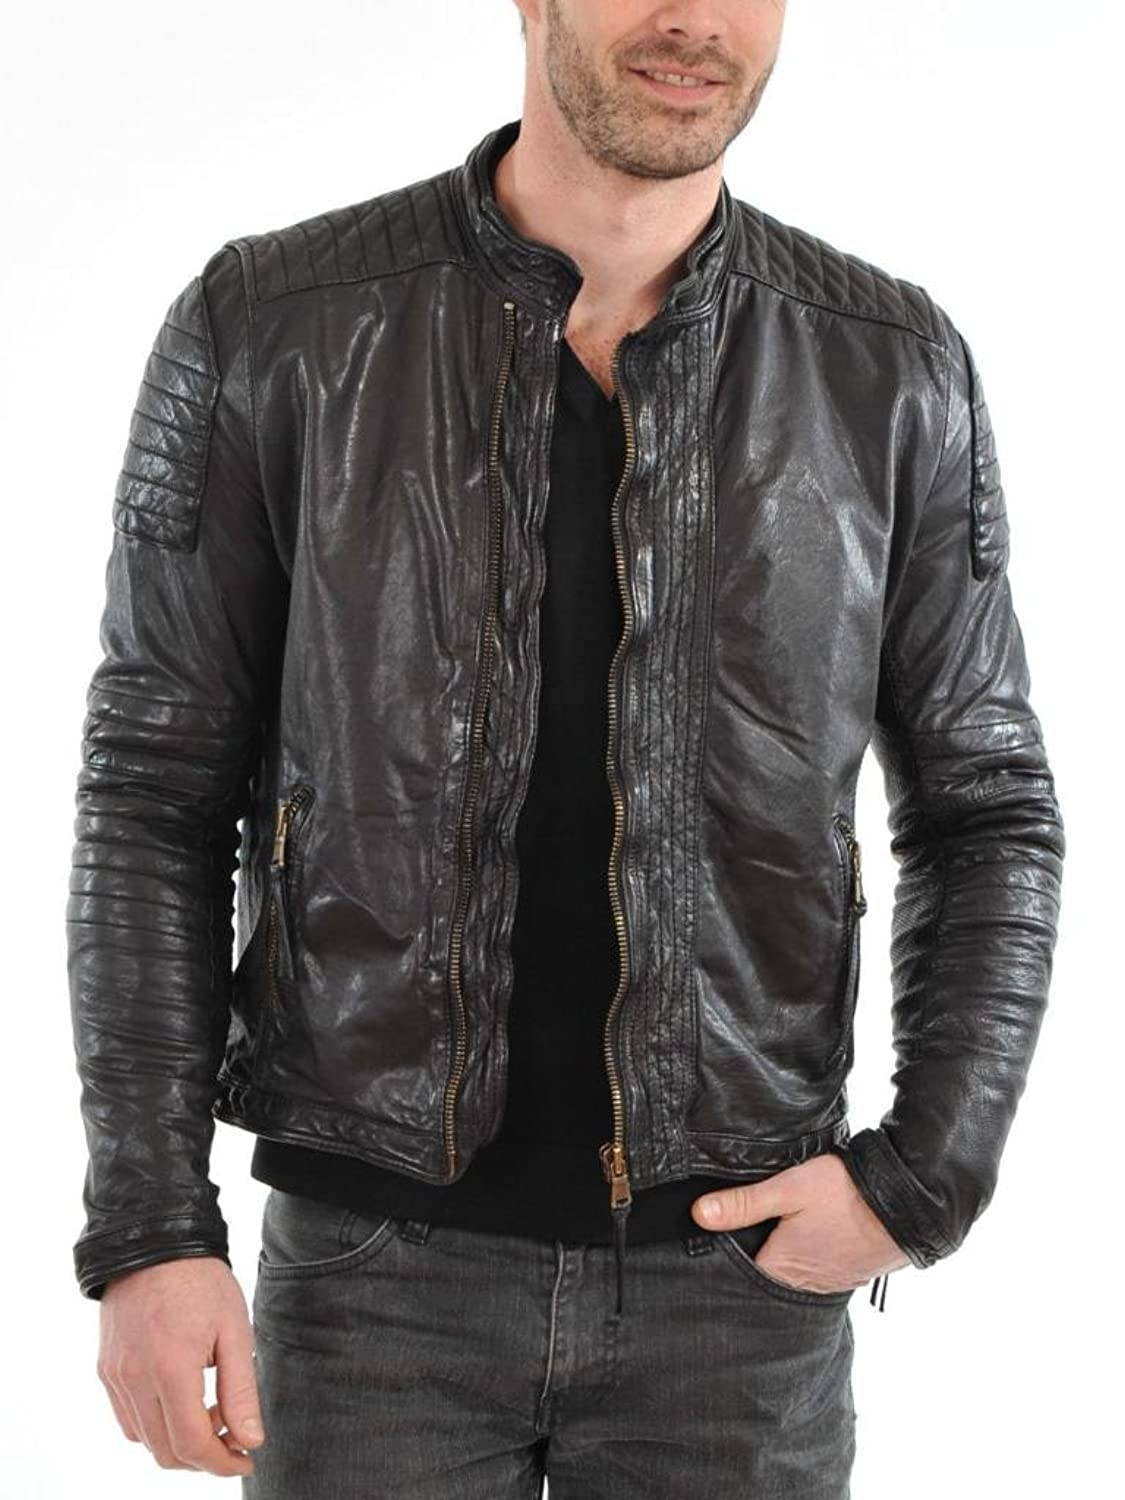 Men Leather Jacket Biker Motorcycle Coat Slim Fit Outwear Jackets AUK096